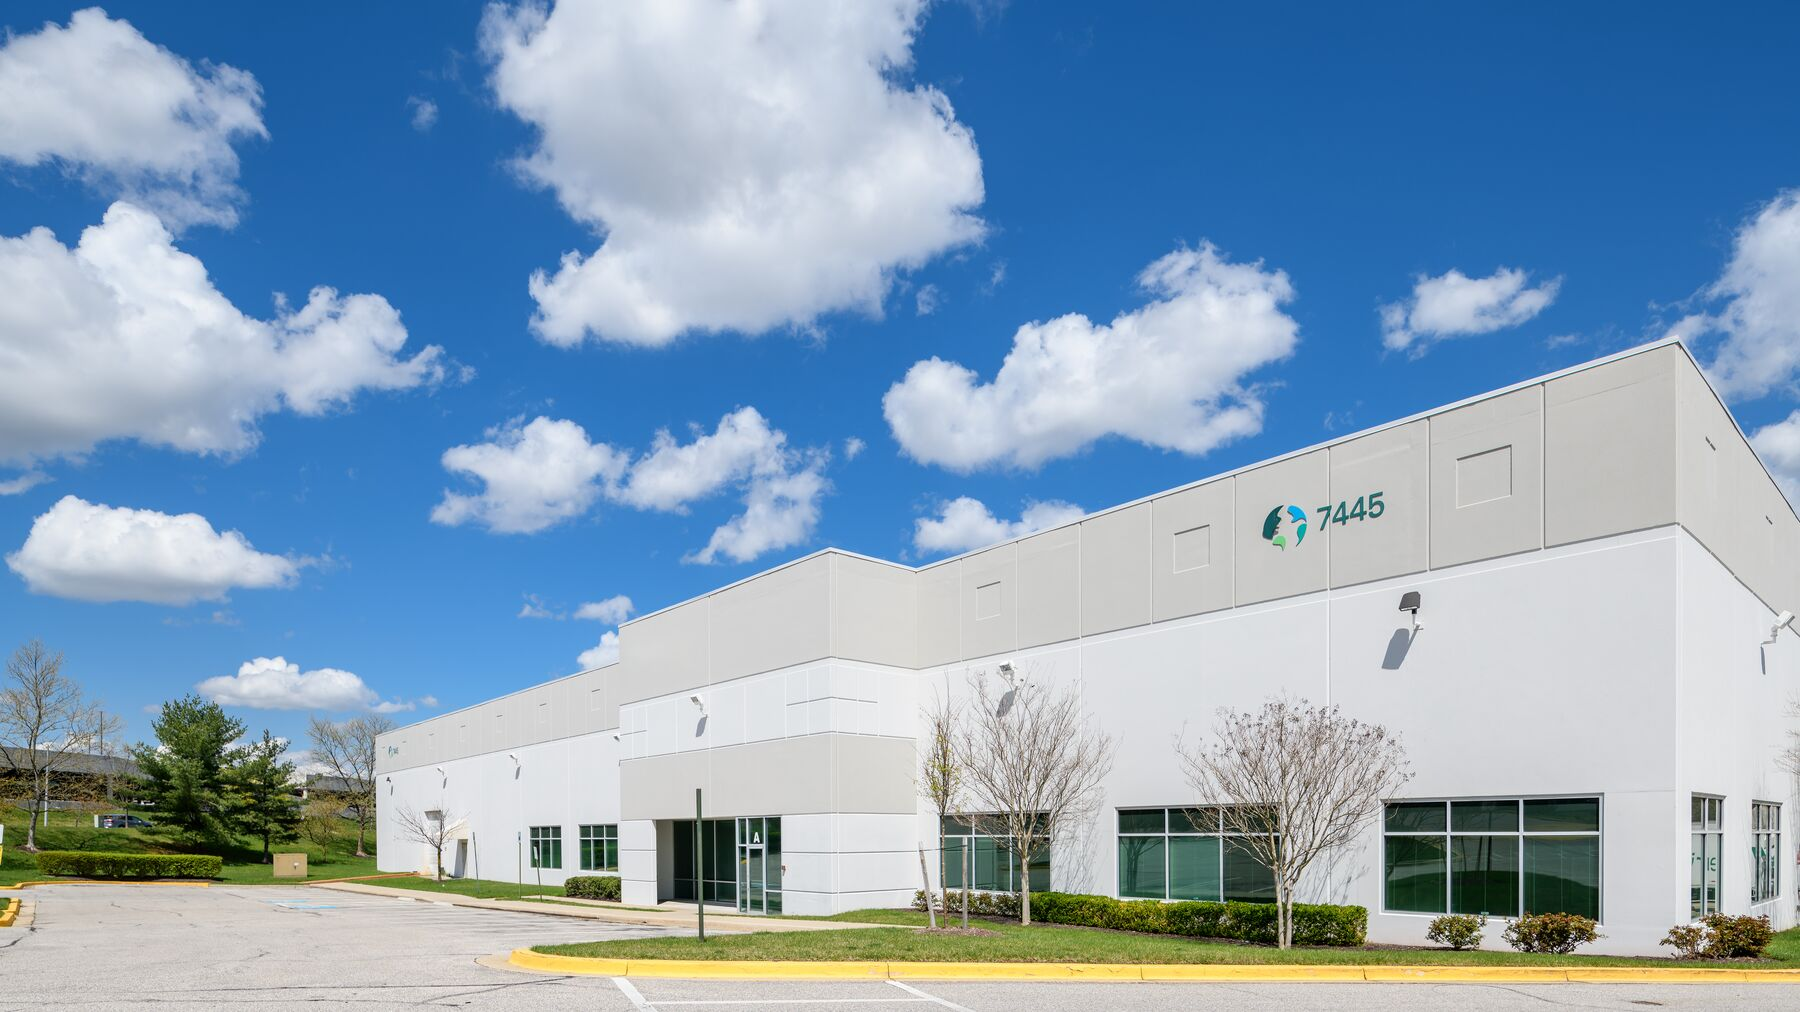 DPM-Prologis-Airport-Commons-1-Photography-03.jpg